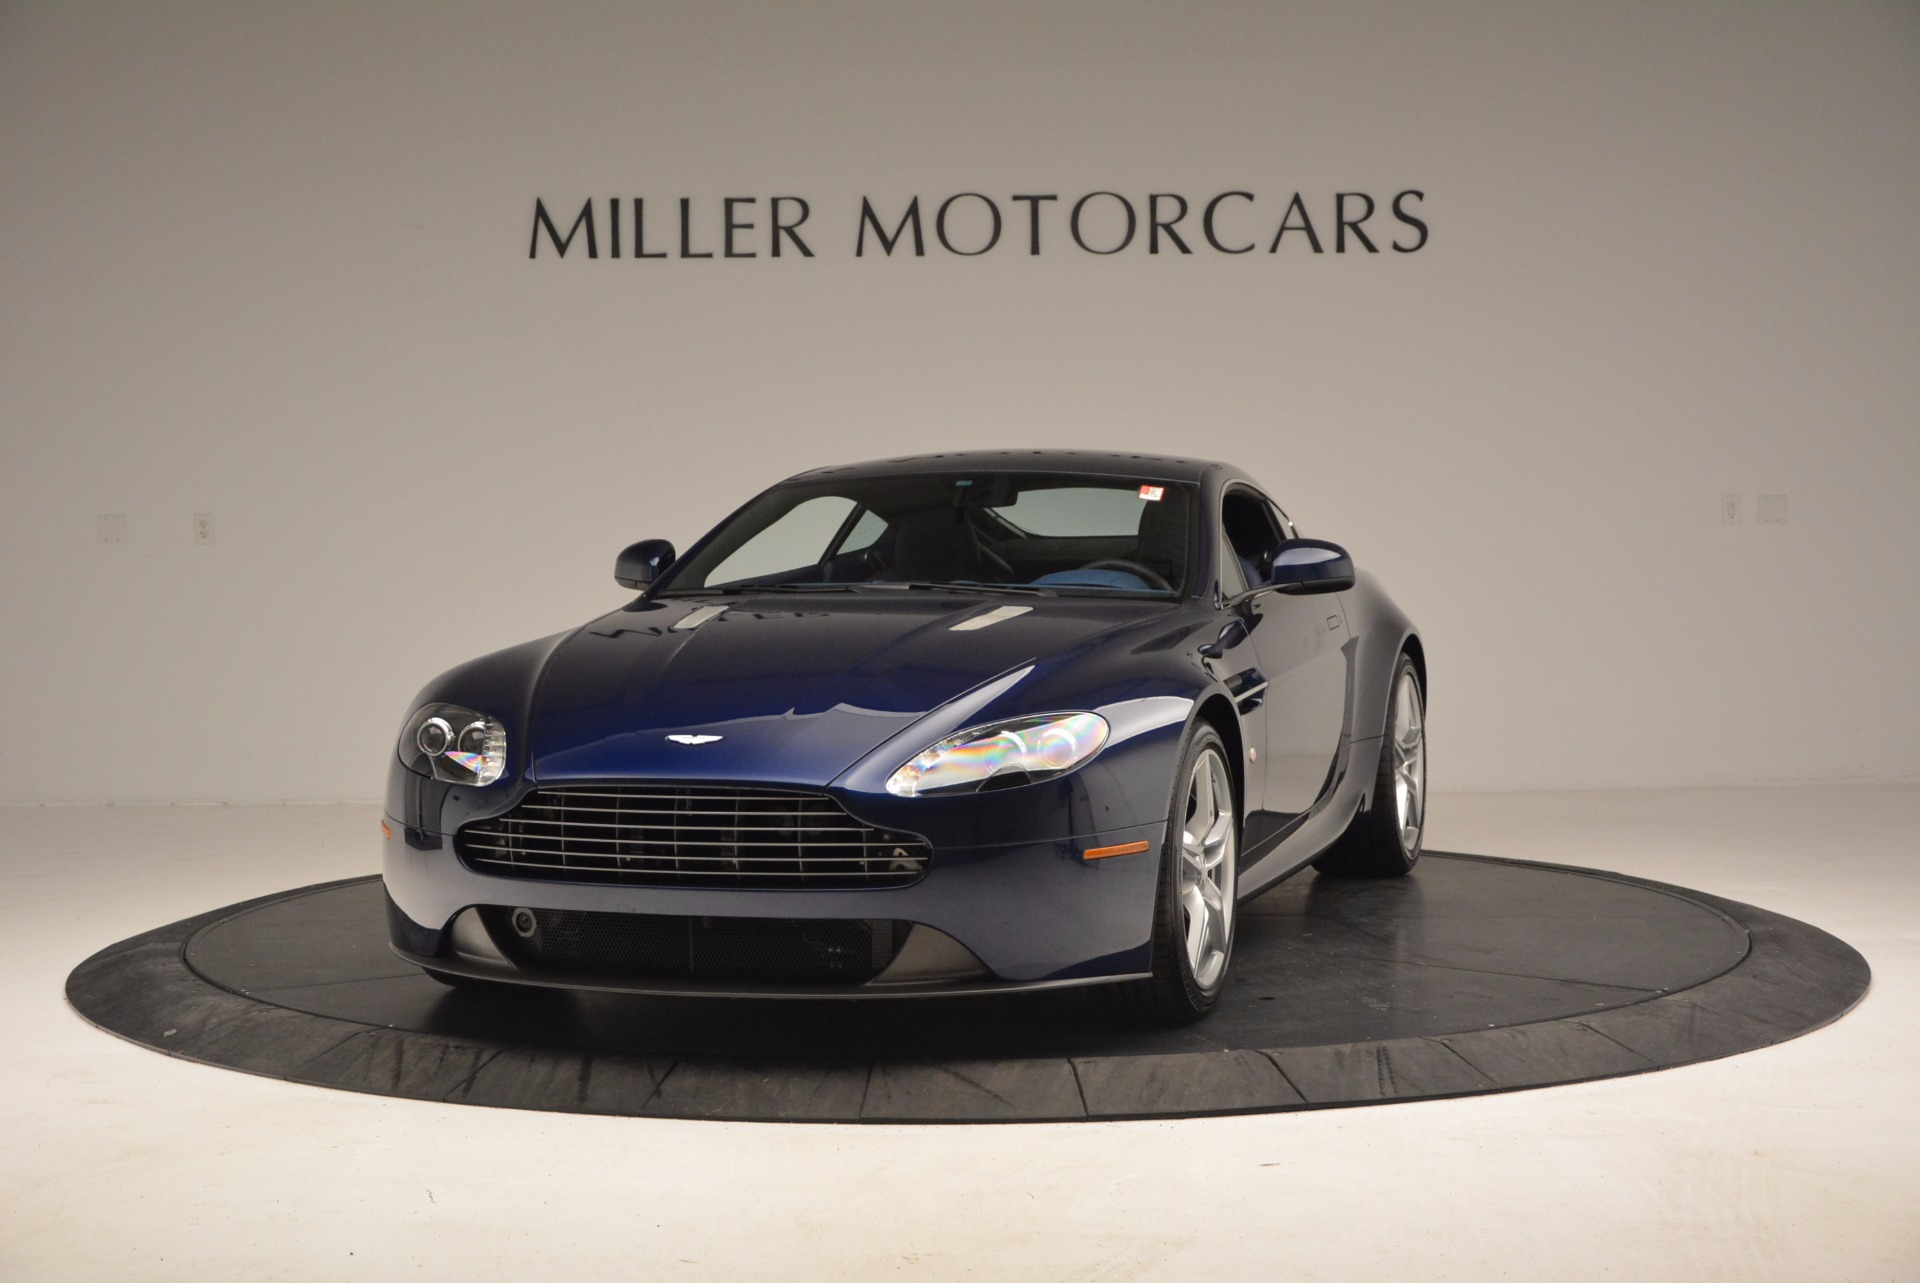 New 2016 Aston Martin V8 Vantage for sale Sold at Aston Martin of Greenwich in Greenwich CT 06830 1